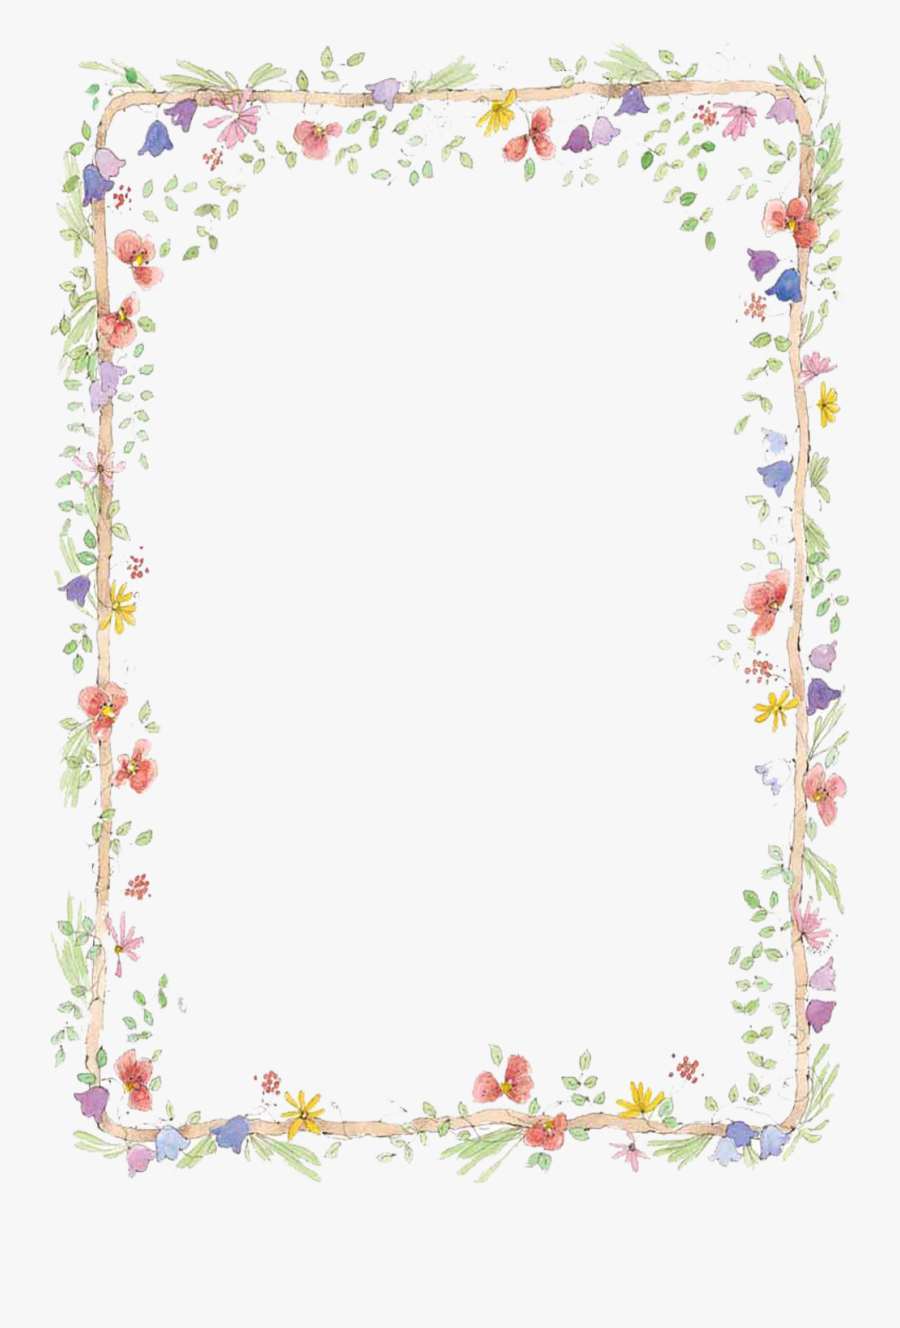 Flowers Borders Download Png - Flower Frame Png, Transparent Clipart